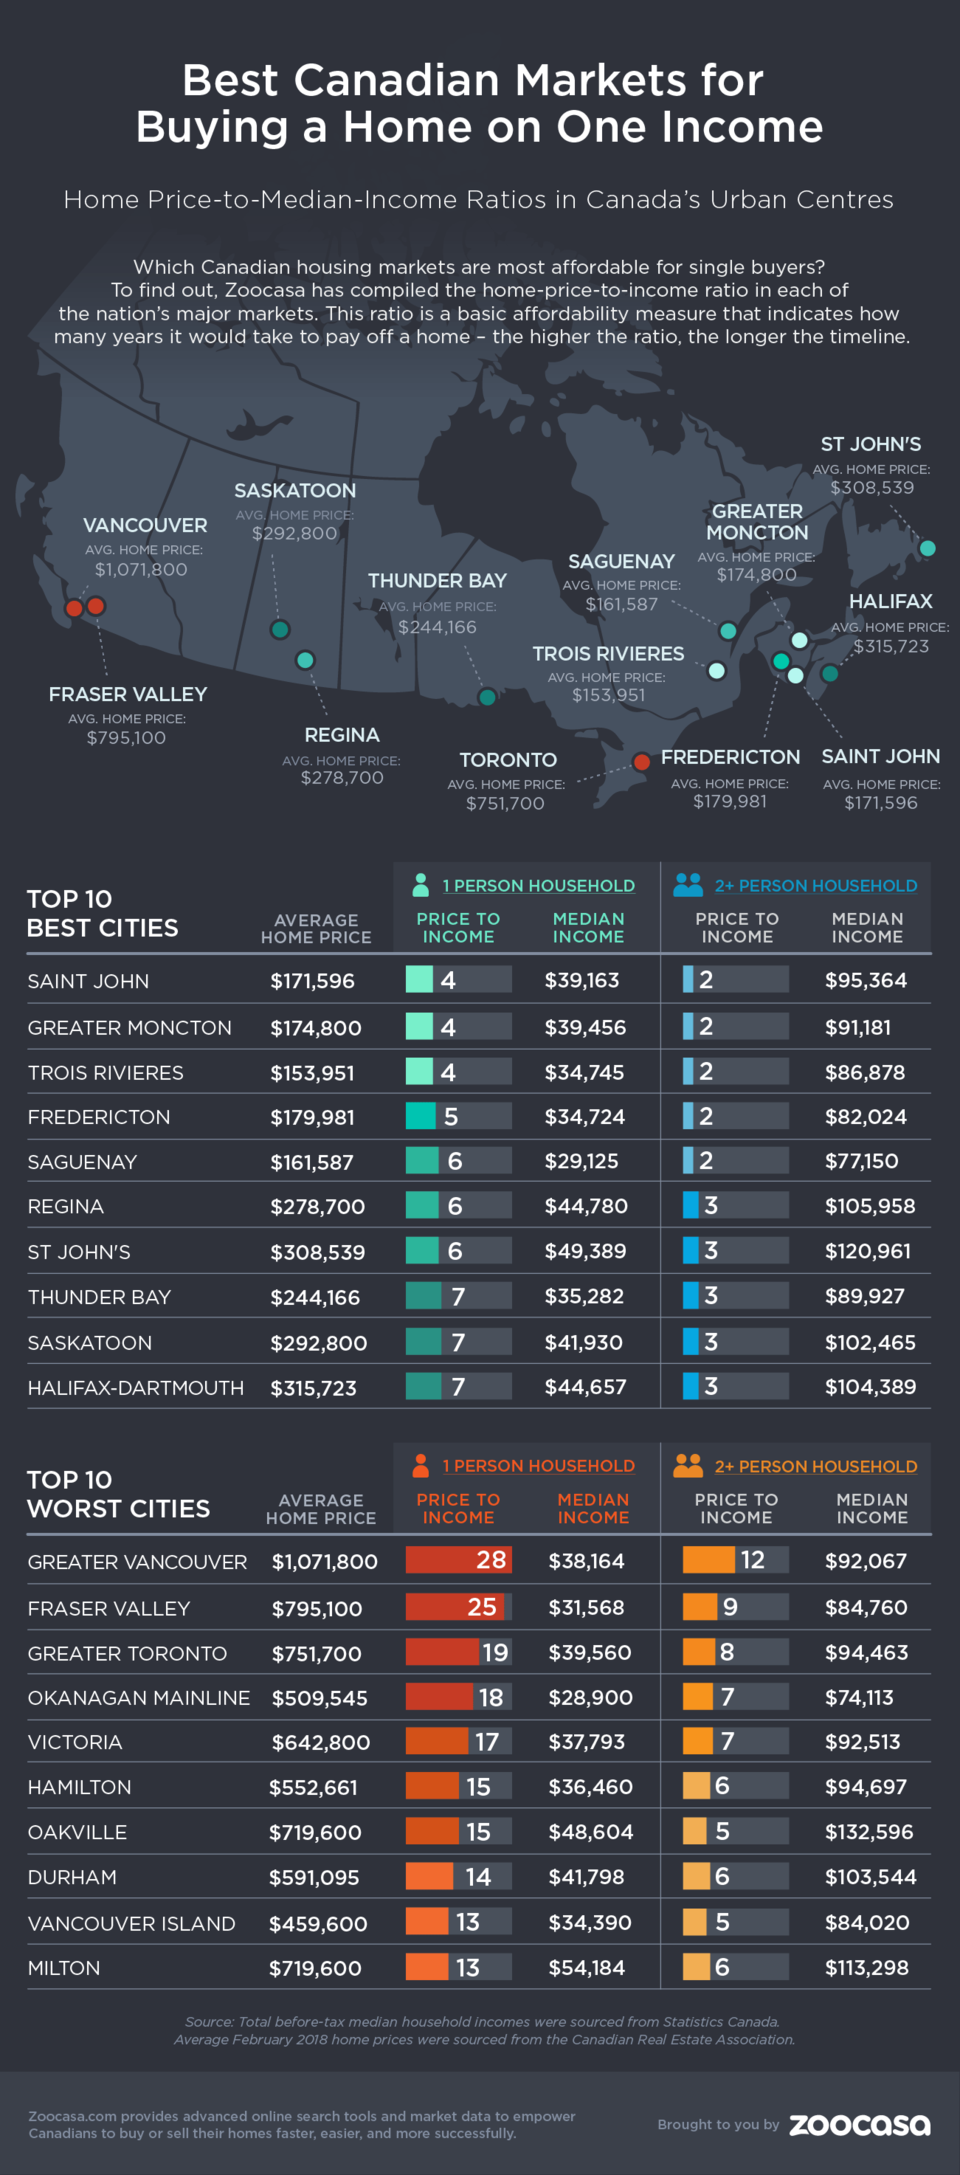 Best and worst cities on single income Zoocasa